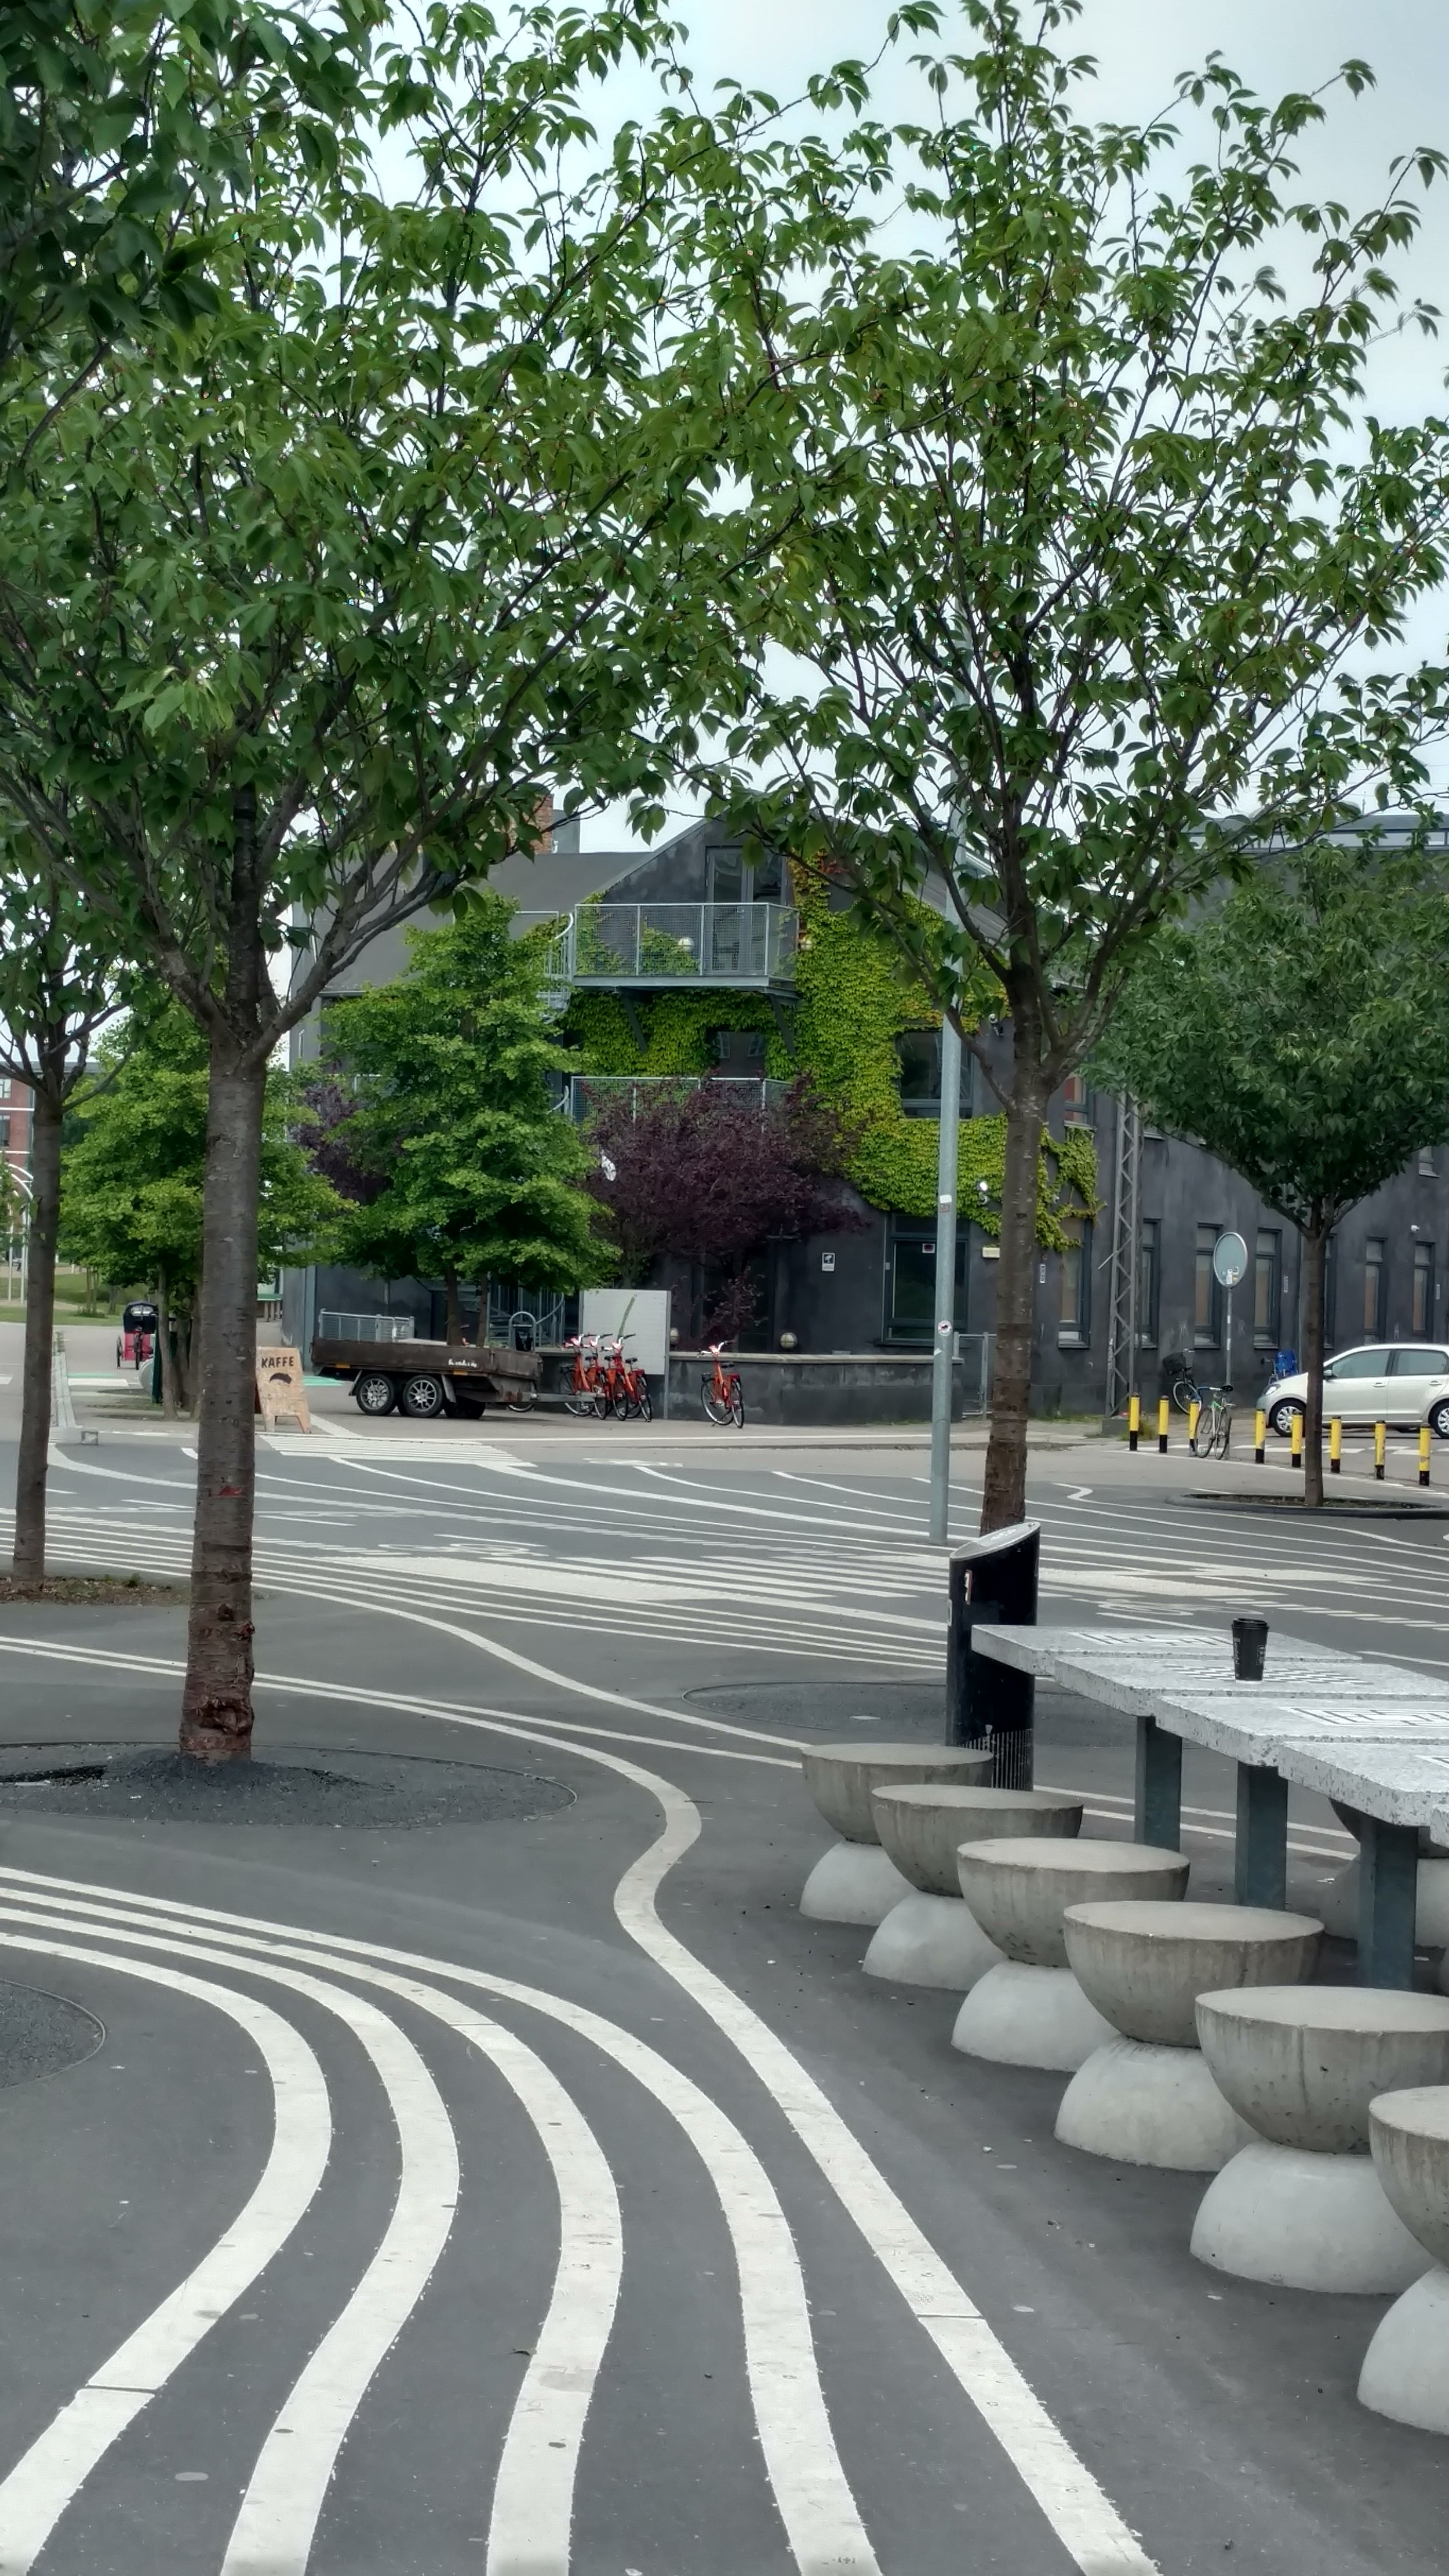 Street furniture and bike lanes in a park.